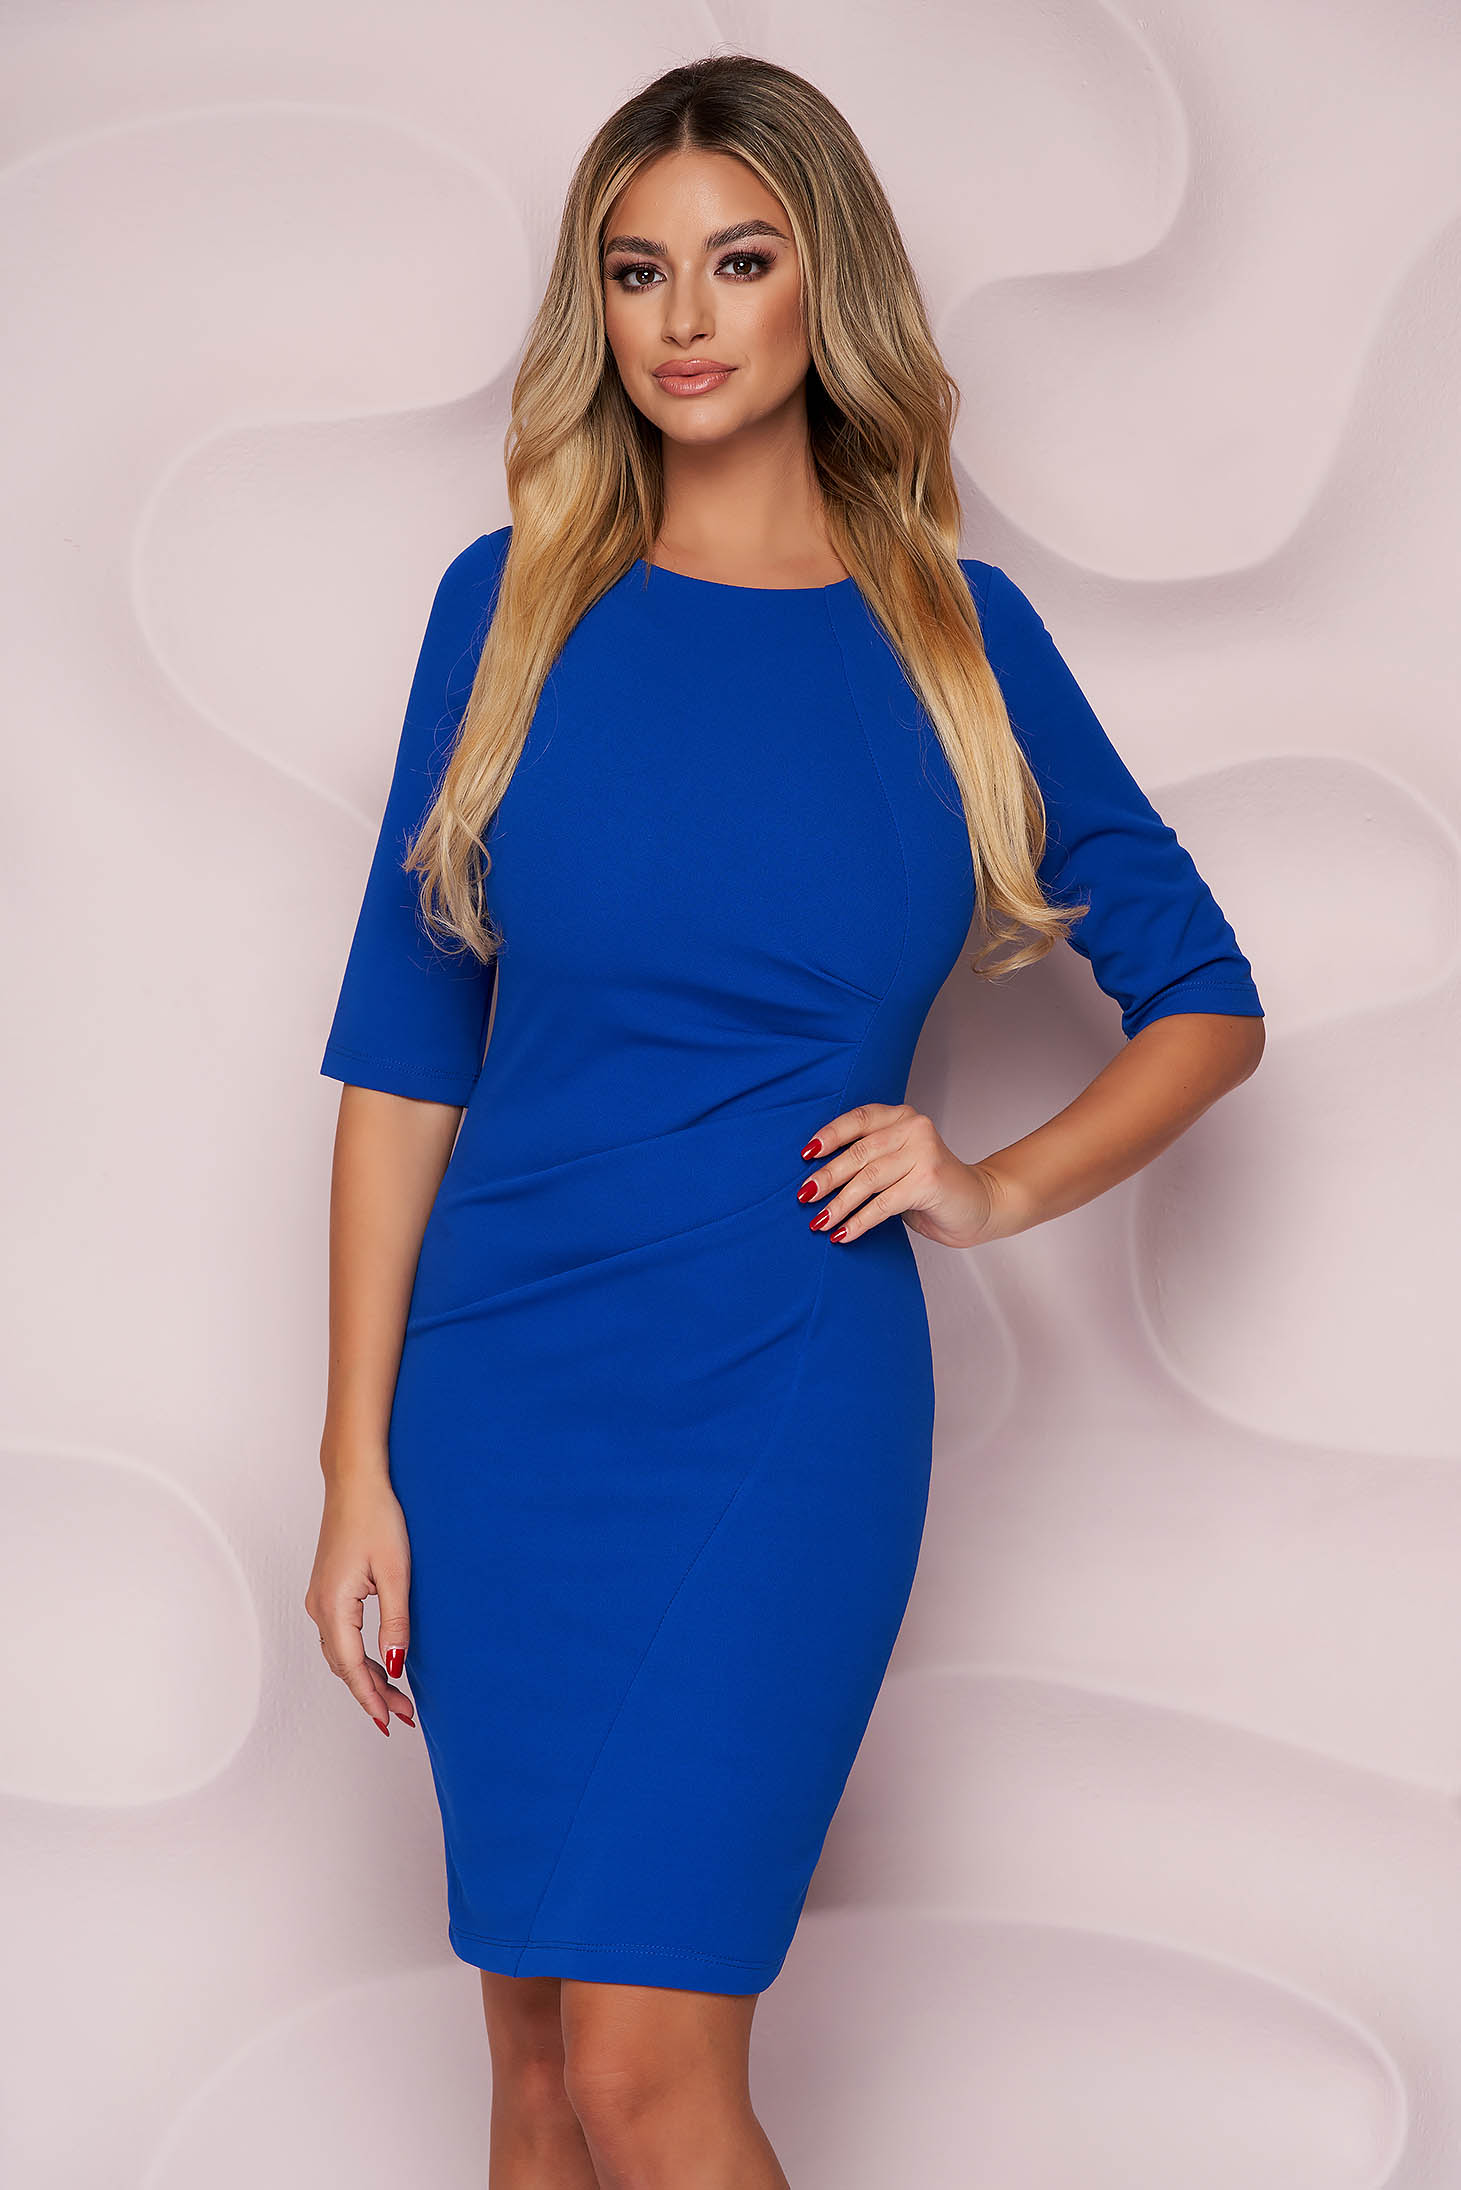 Blue dress pencil midi office thin fabric from elastic fabric with 3/4 sleeves